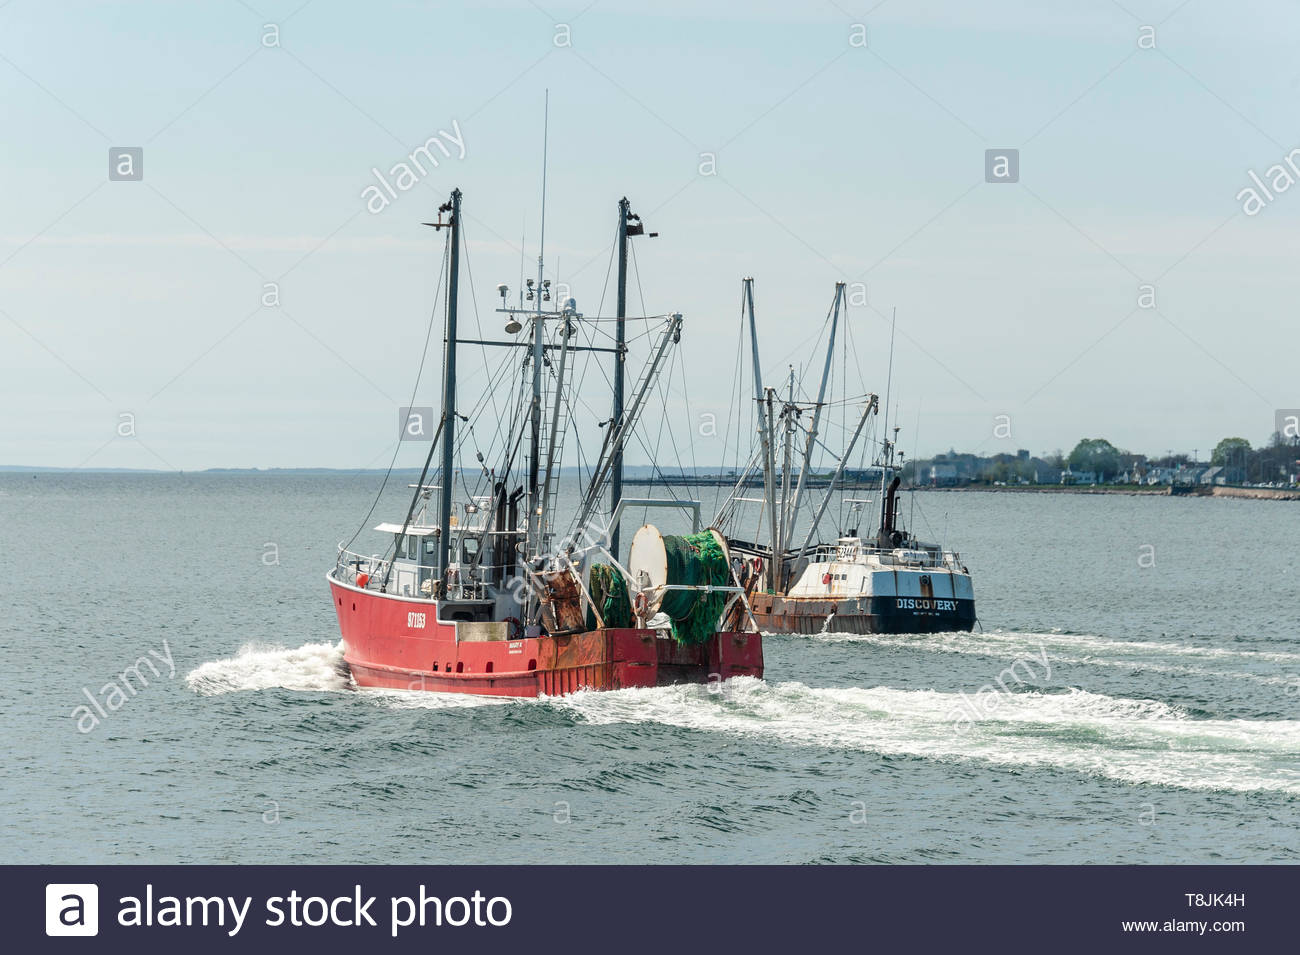 New Bedford, Massachusetts, USA - May 8, 2019: Dragger Mary K easing past fishing vessel Discovery  crossing New Bedford outer harbor - Stock Image